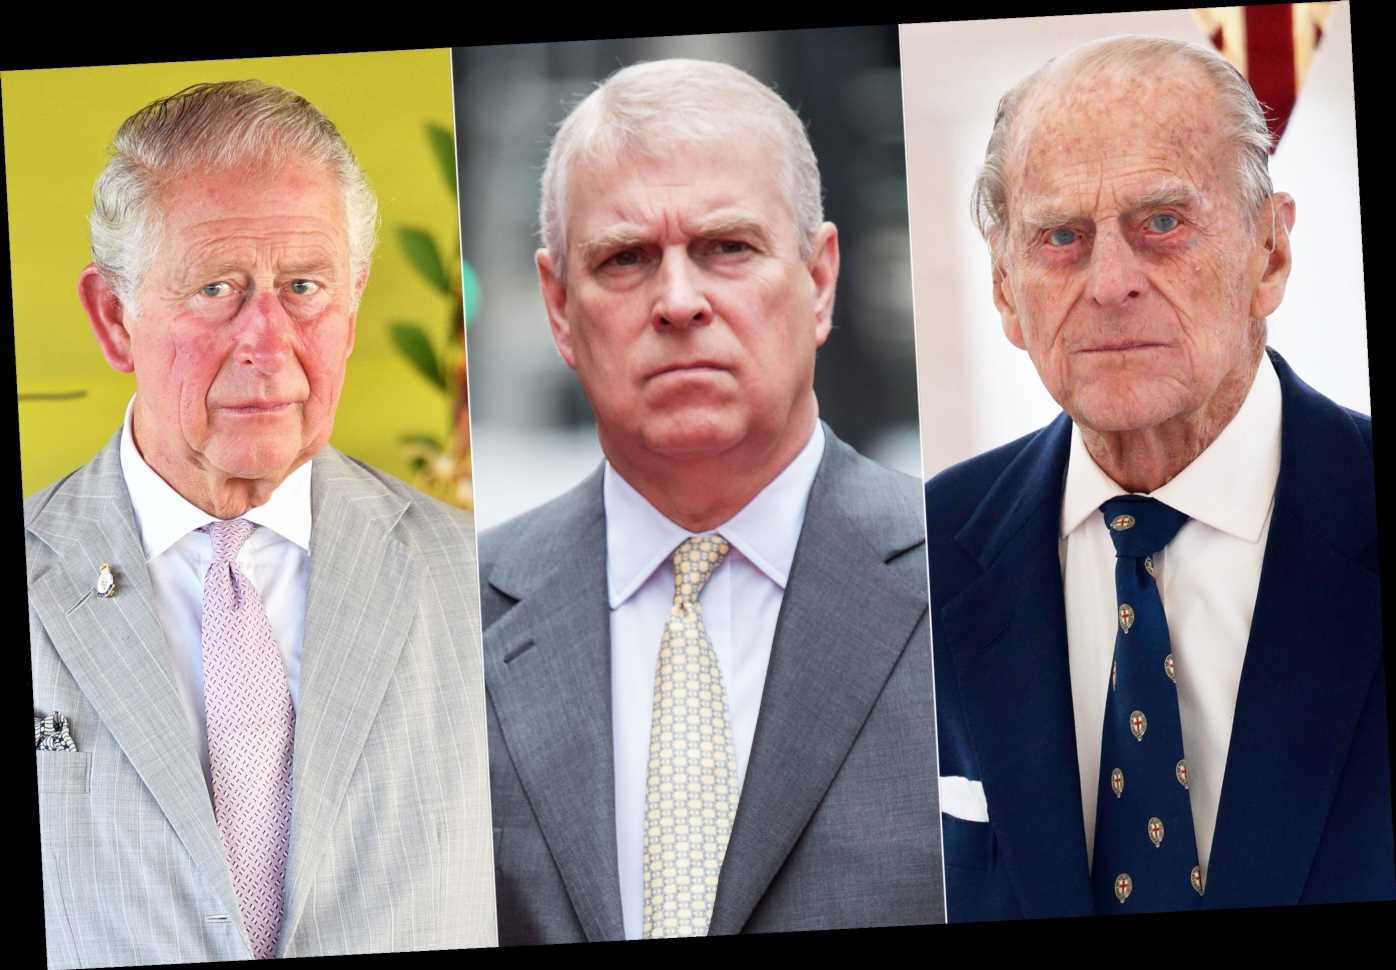 Prince Andrew Drove to Sandringham for Face-to-Face Meeting with Philip and Charles After TV Interview